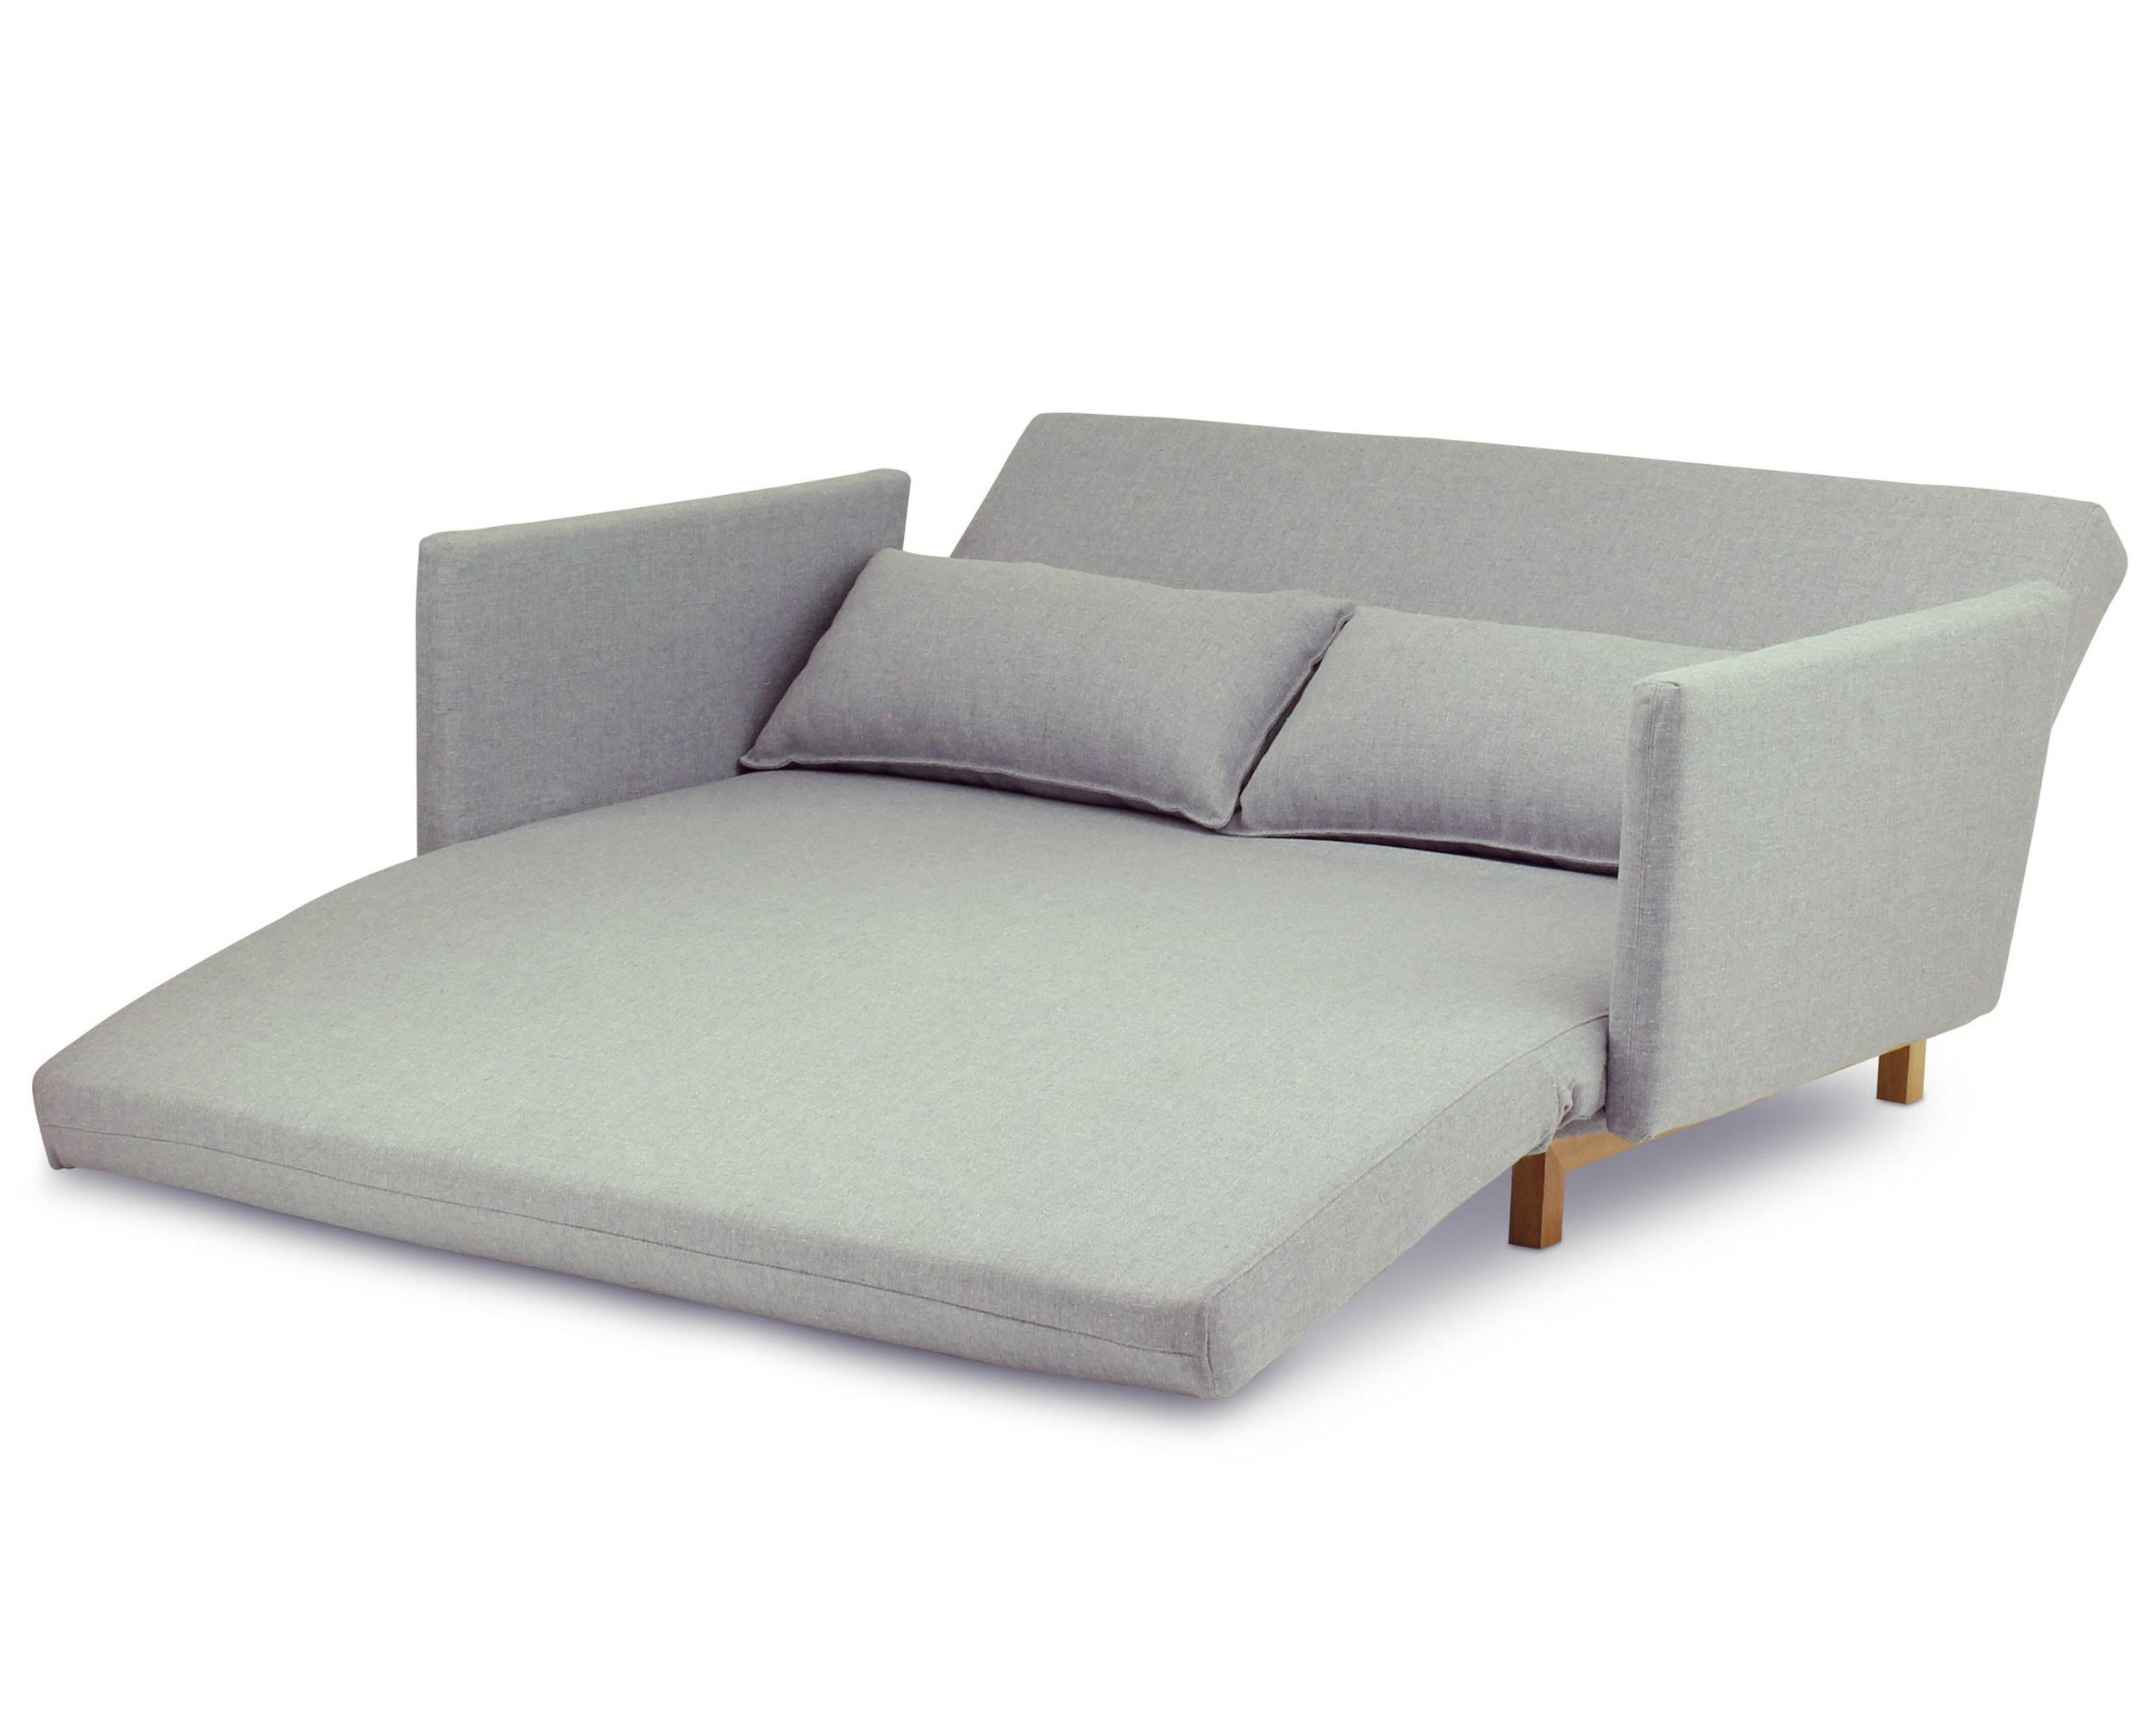 Fabric Chaise Longue Sofa Bed – Thesecretconsul Within Chaise Longue Sofa Beds (View 11 of 20)